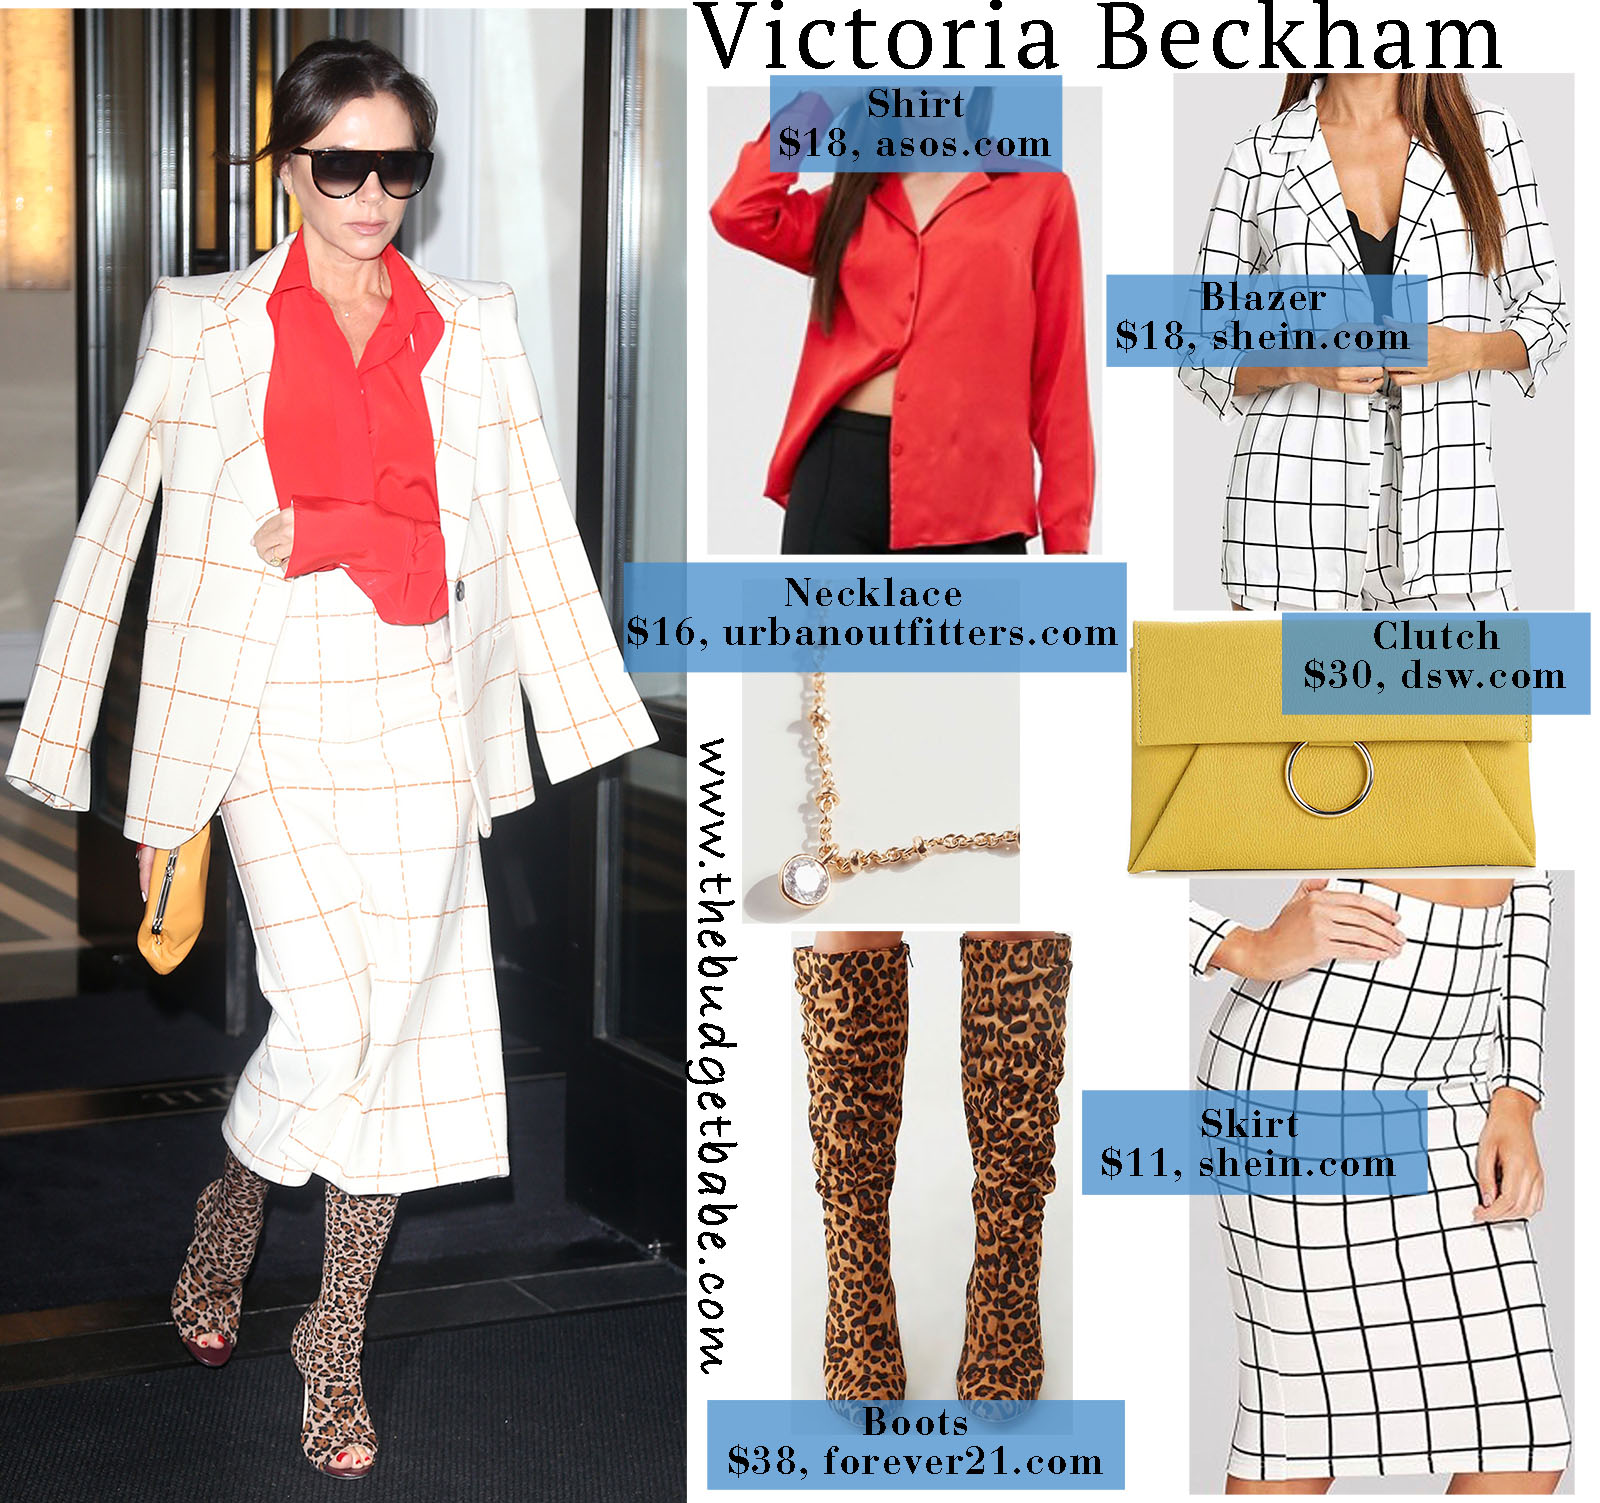 Victoria Beckham steps out in a fun and sophisticated skirtsuit!